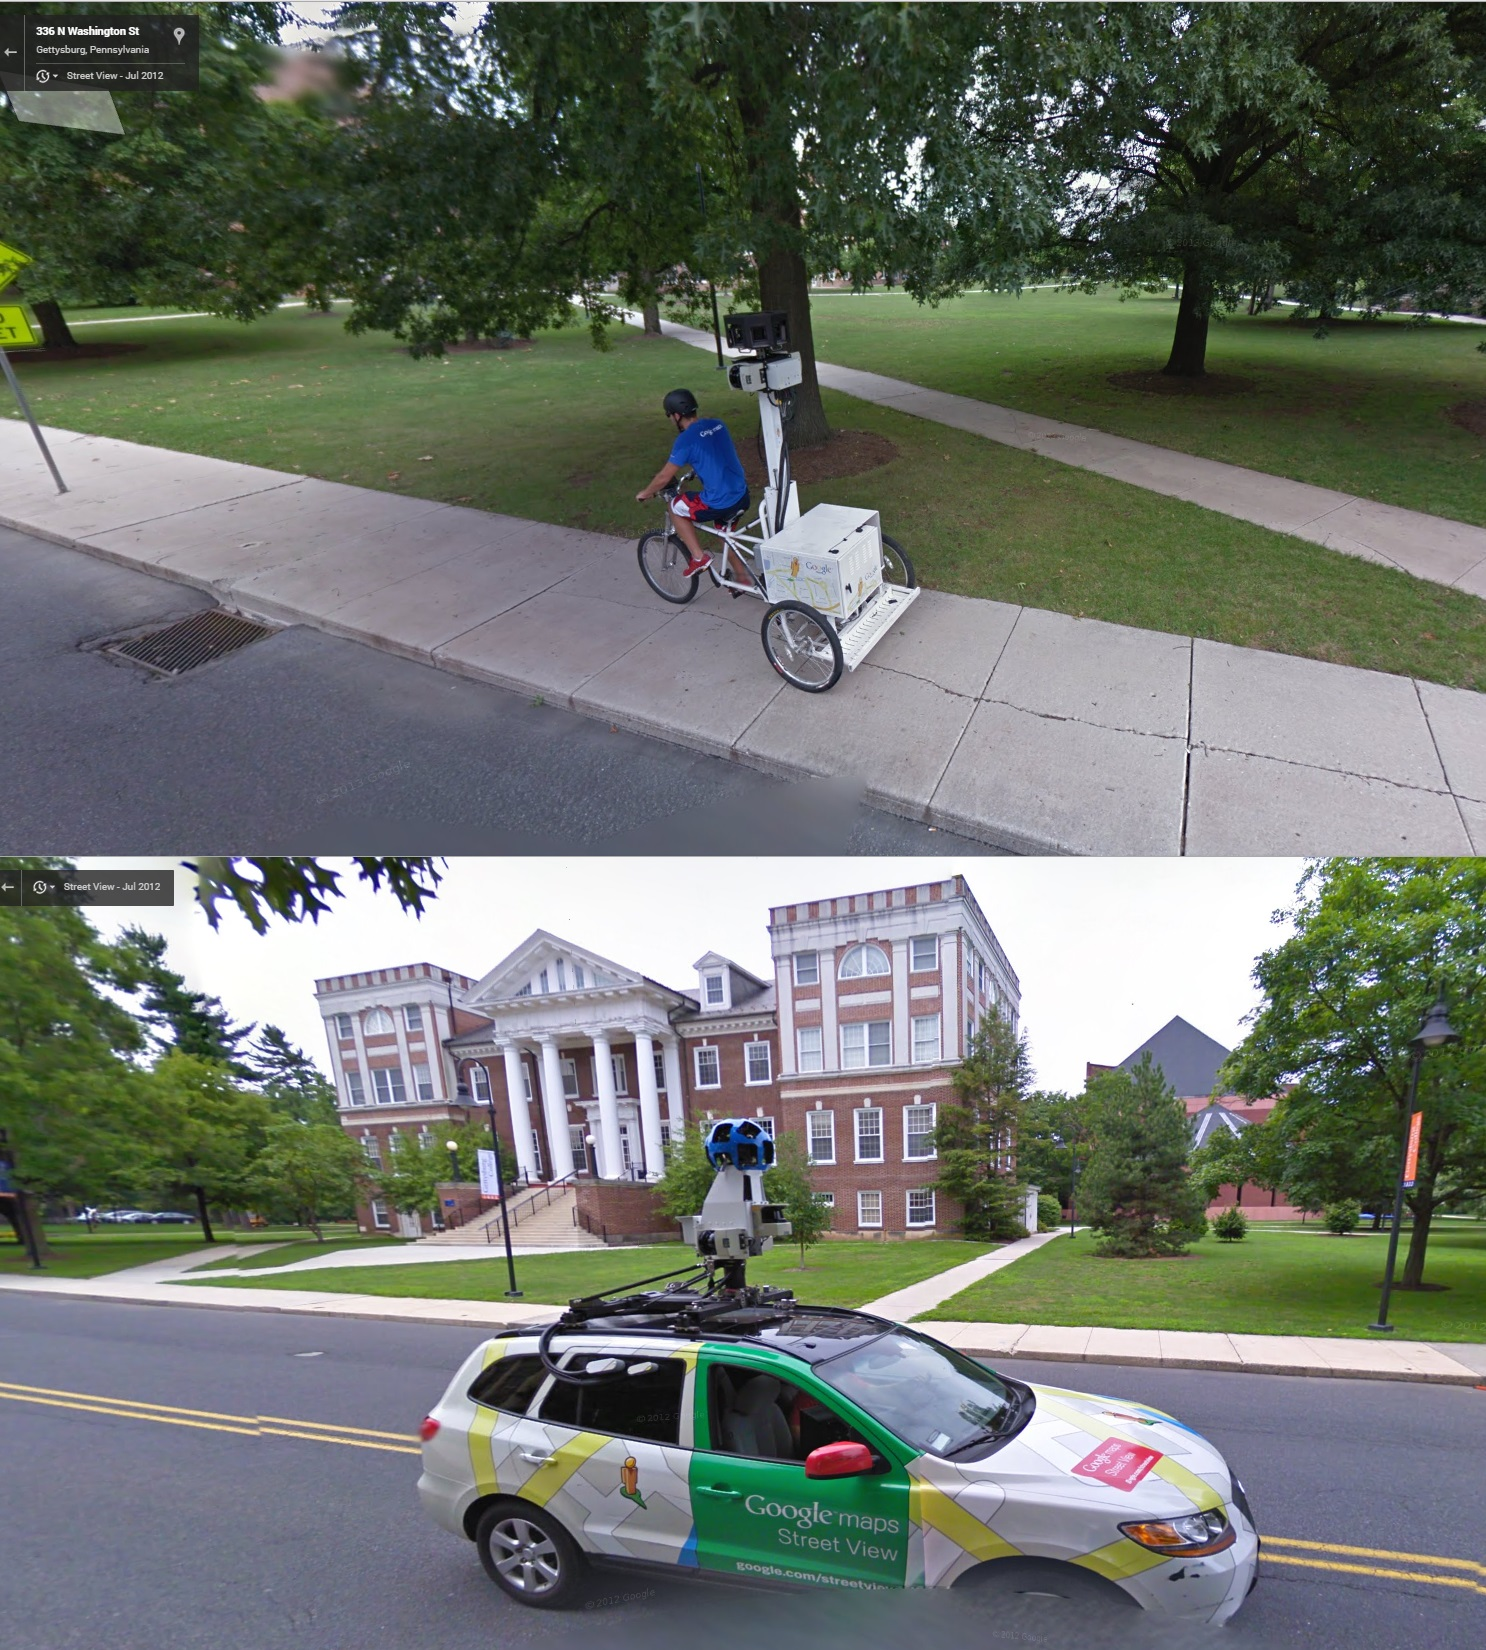 Google Street View Takes Another Selfie!